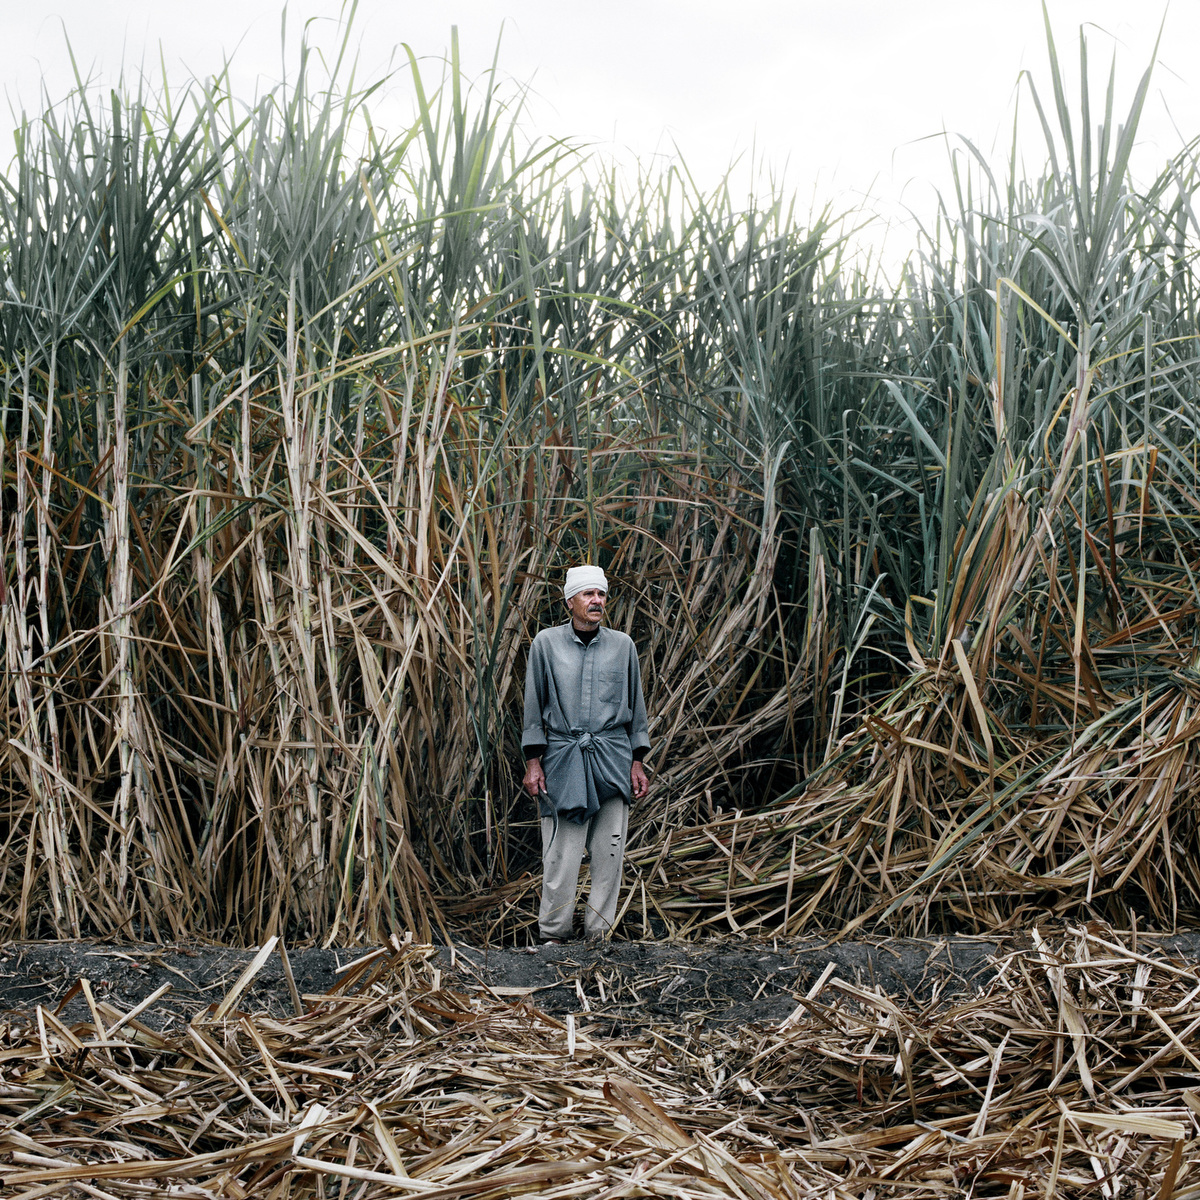 A farmer stands in a field.